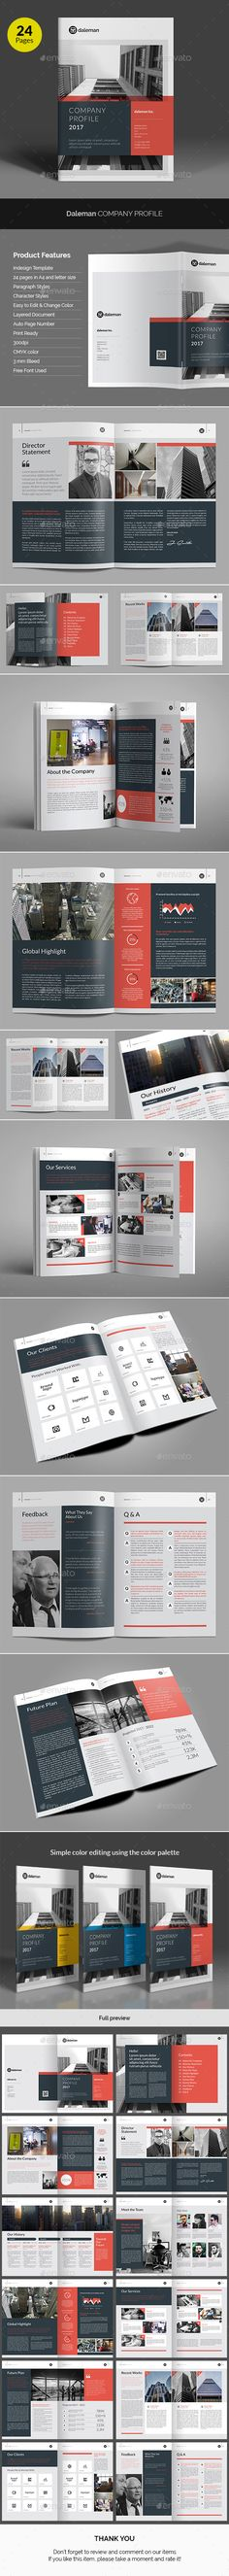 #Daleman #Company #Profile - #Corporate #Brochures Download here: https://graphicriver.net/item/daleman-company-profile/16883962?ref=artgallery8                                                                                                                                                                                 More